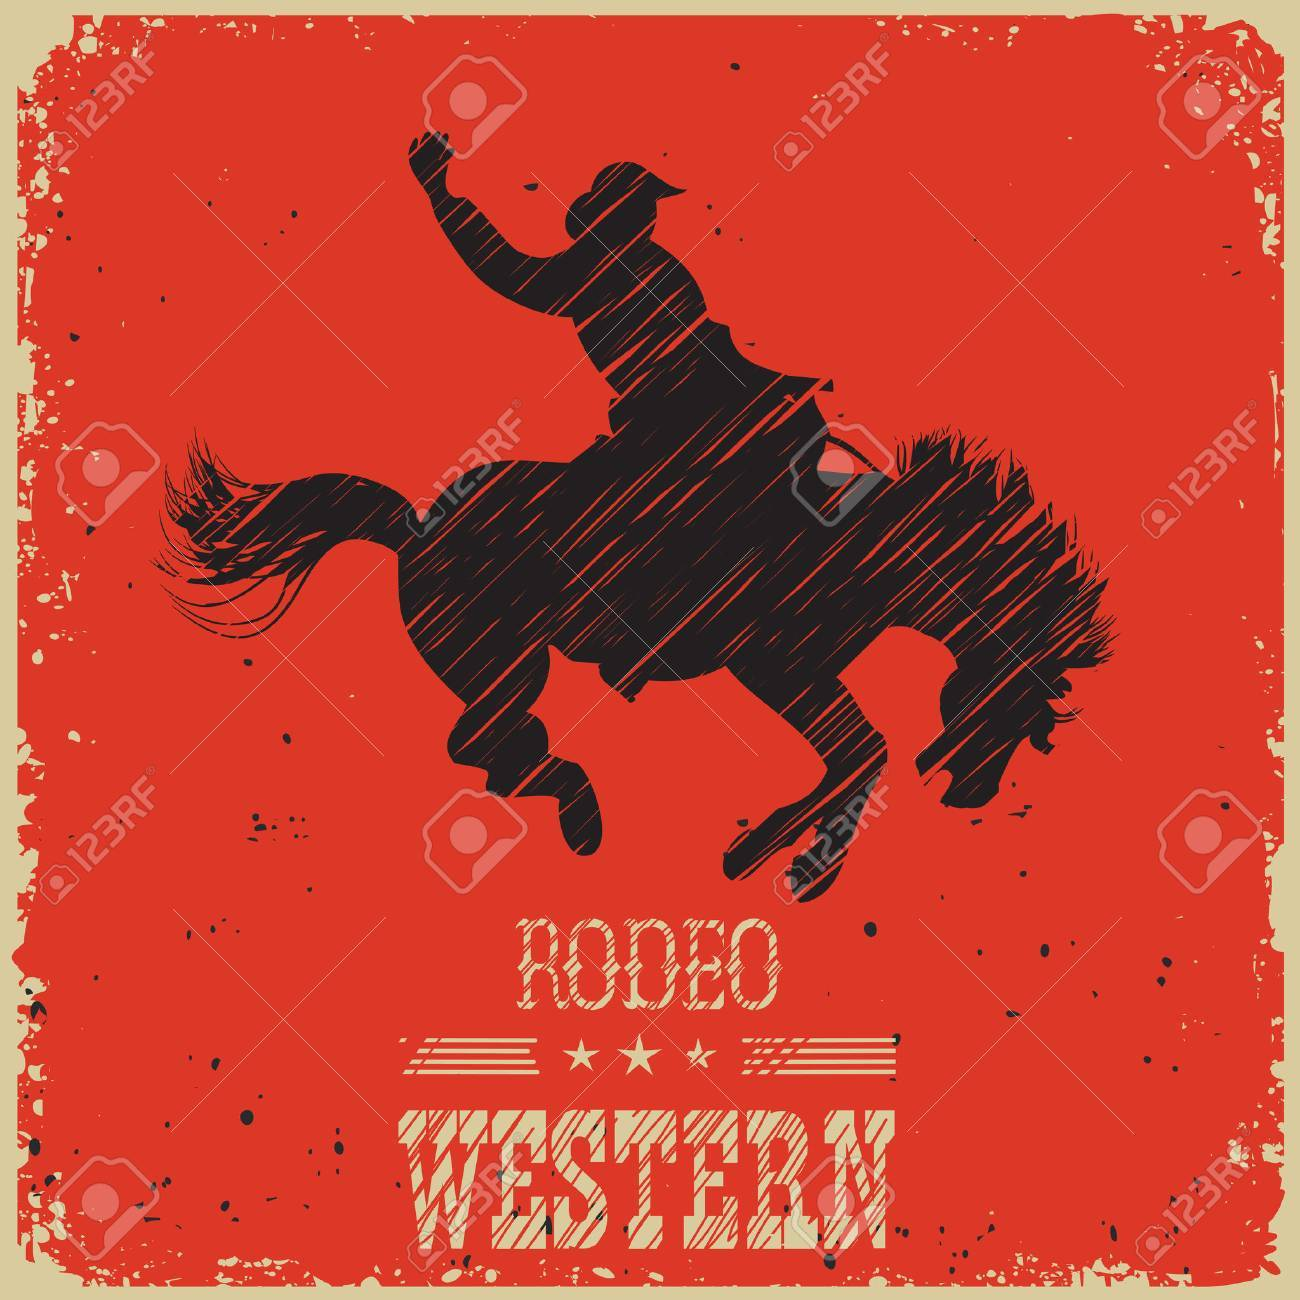 Western Cowboy Riding Wild Horse Vector Poster On Red Background Royalty Free Cliparts Vectors And Stock Illustration Image 54701295